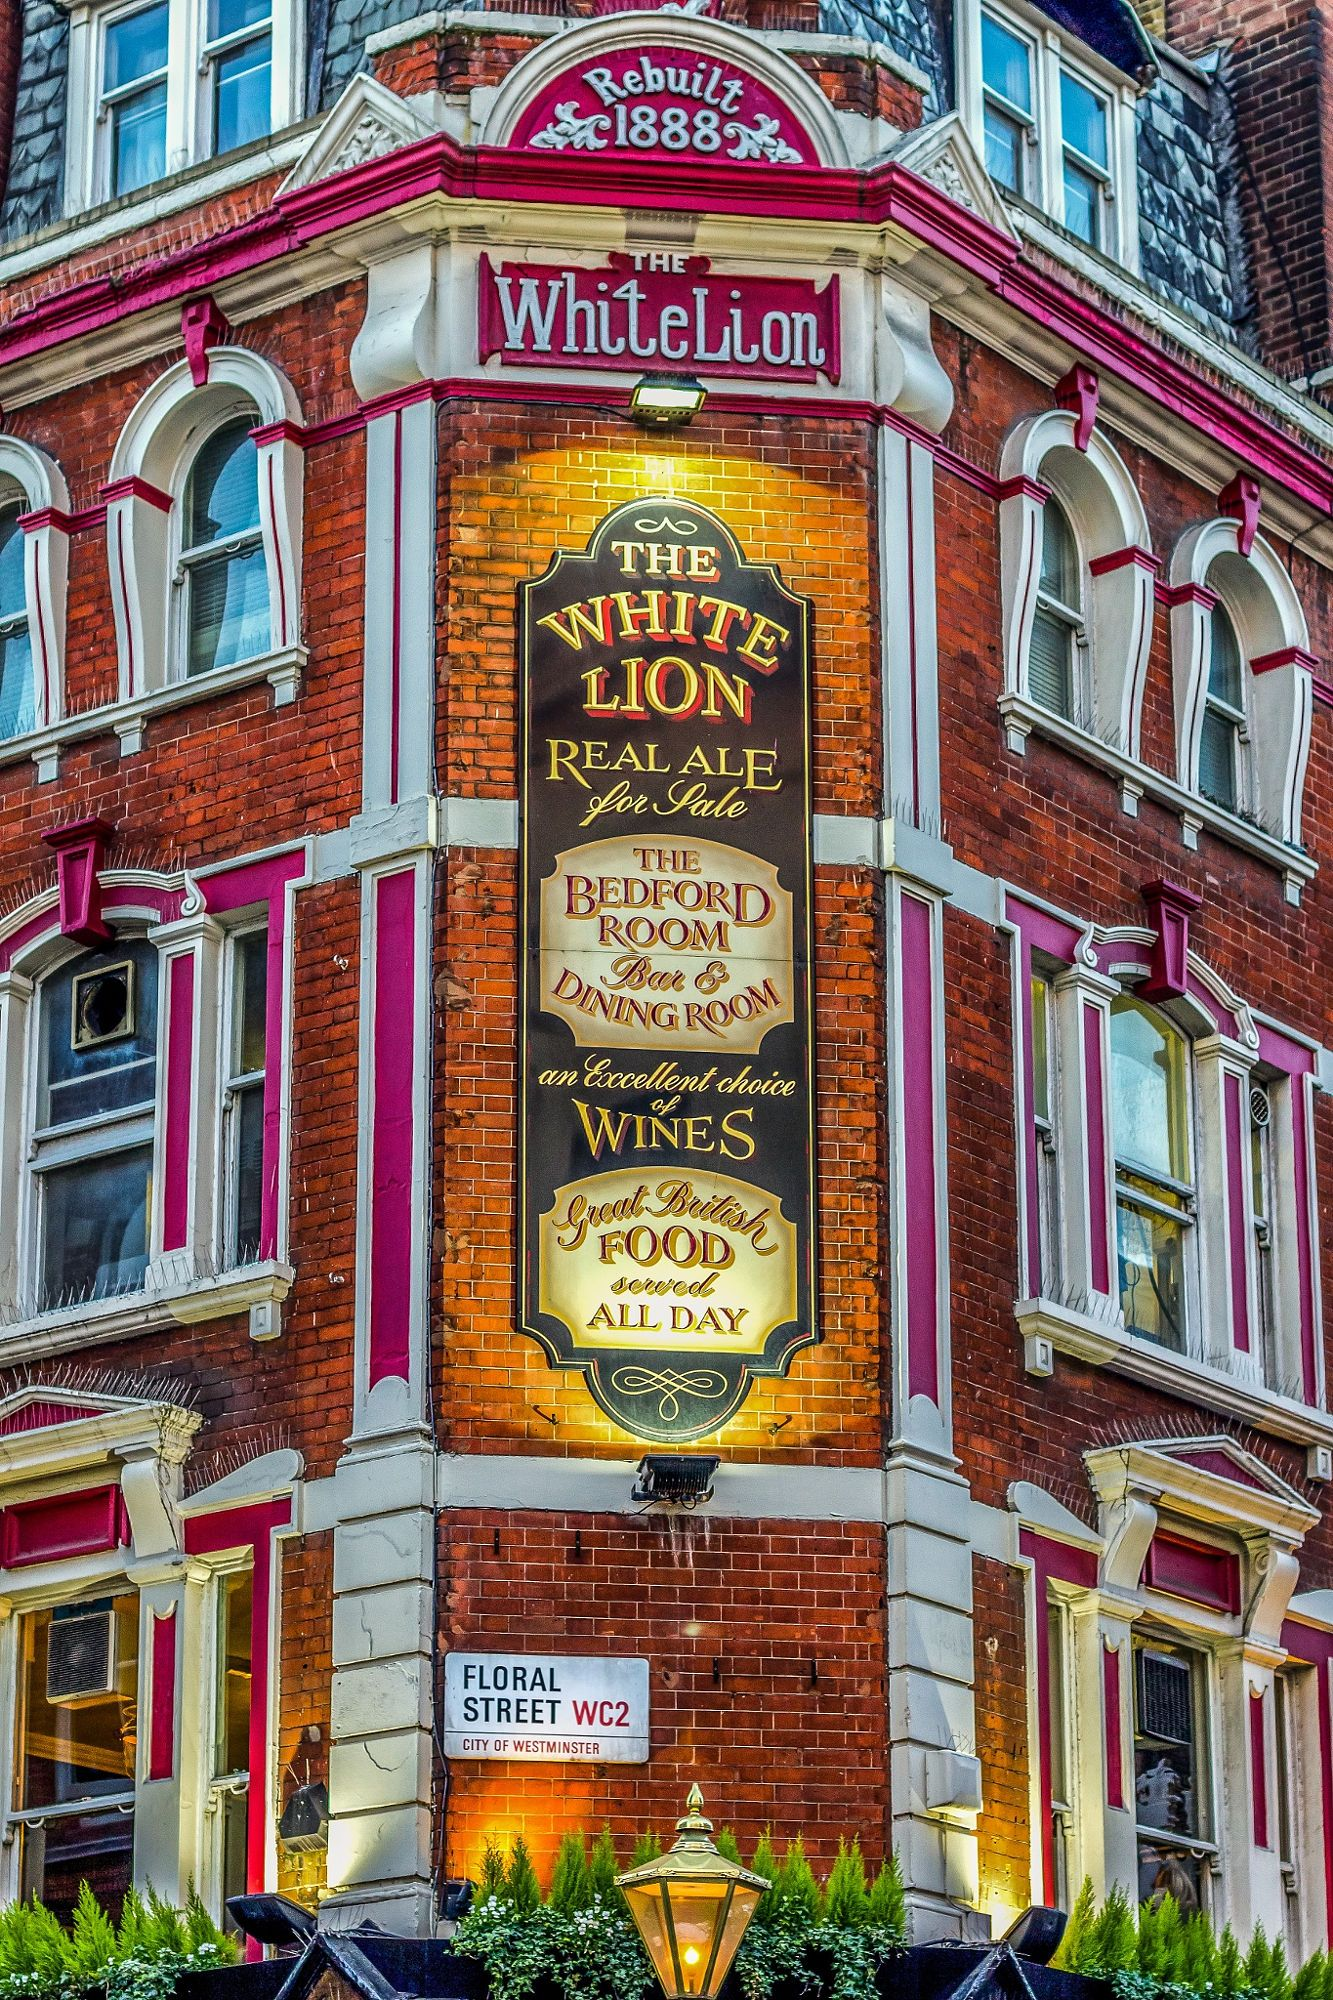 The façade of the 'White Lion' pub in London's Covent